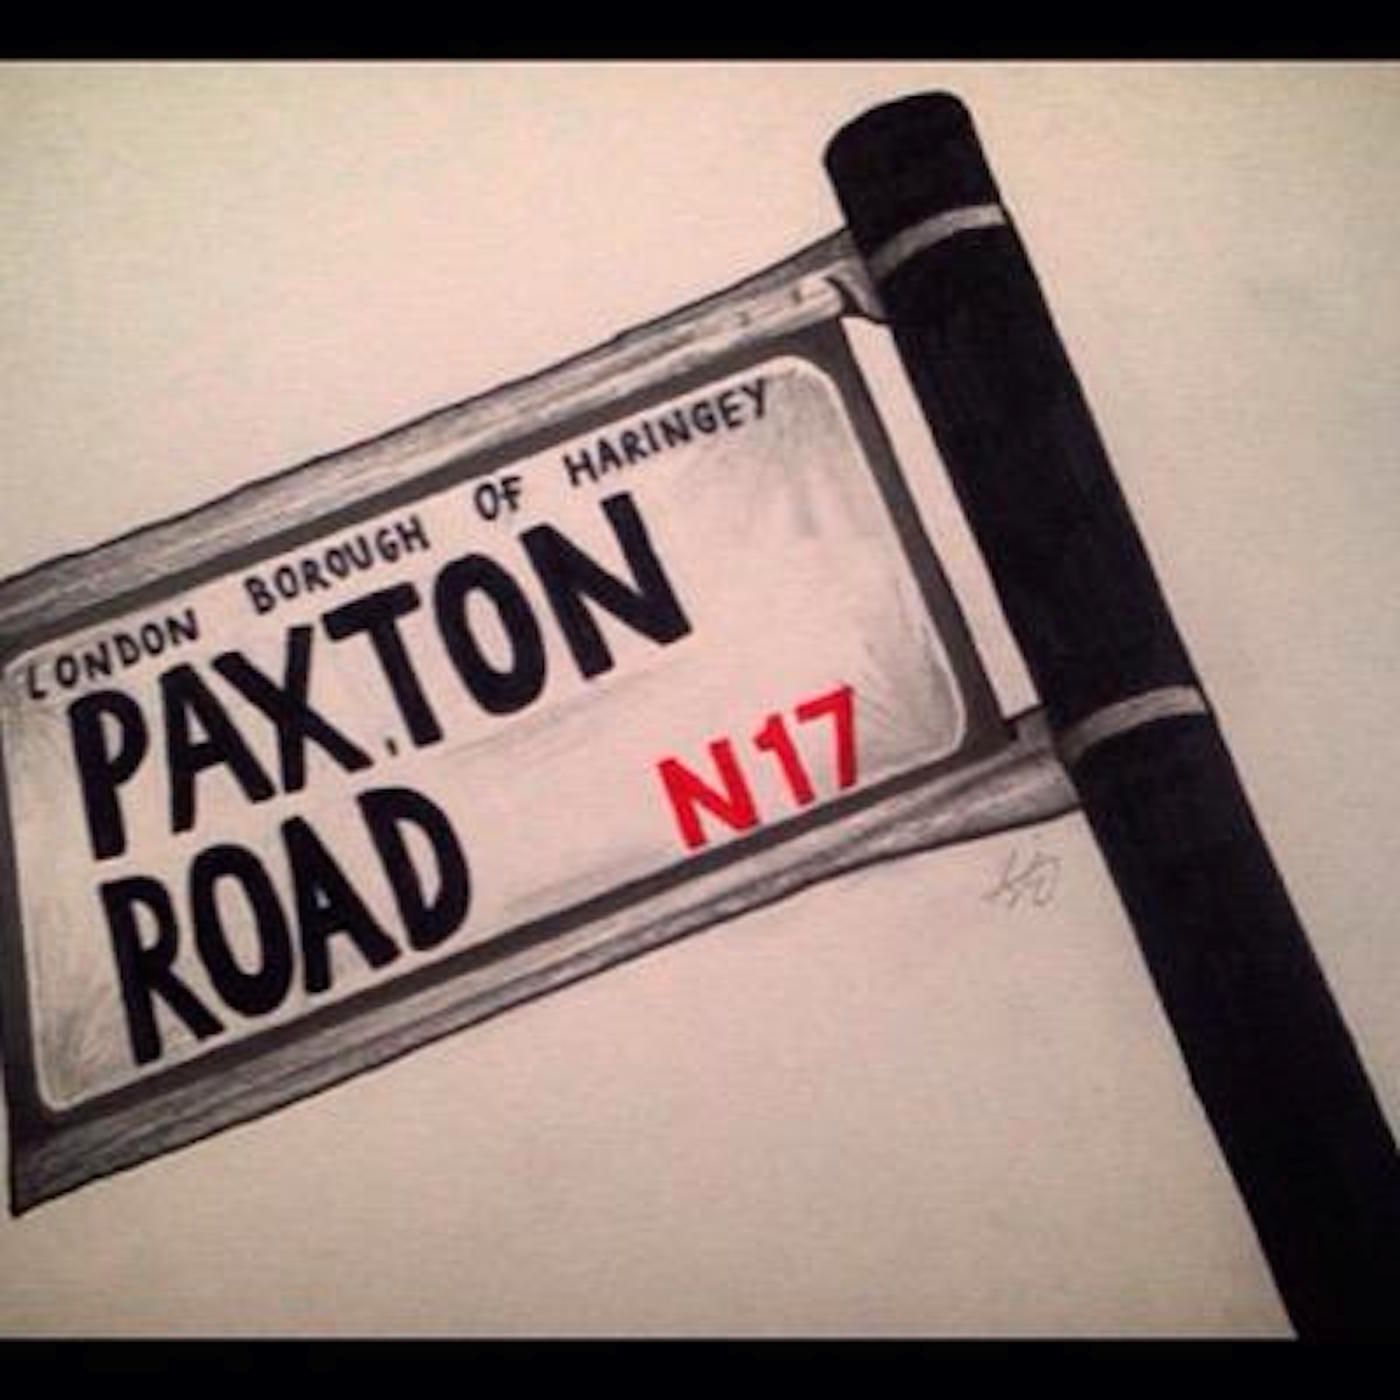 Paxton Road Podcast